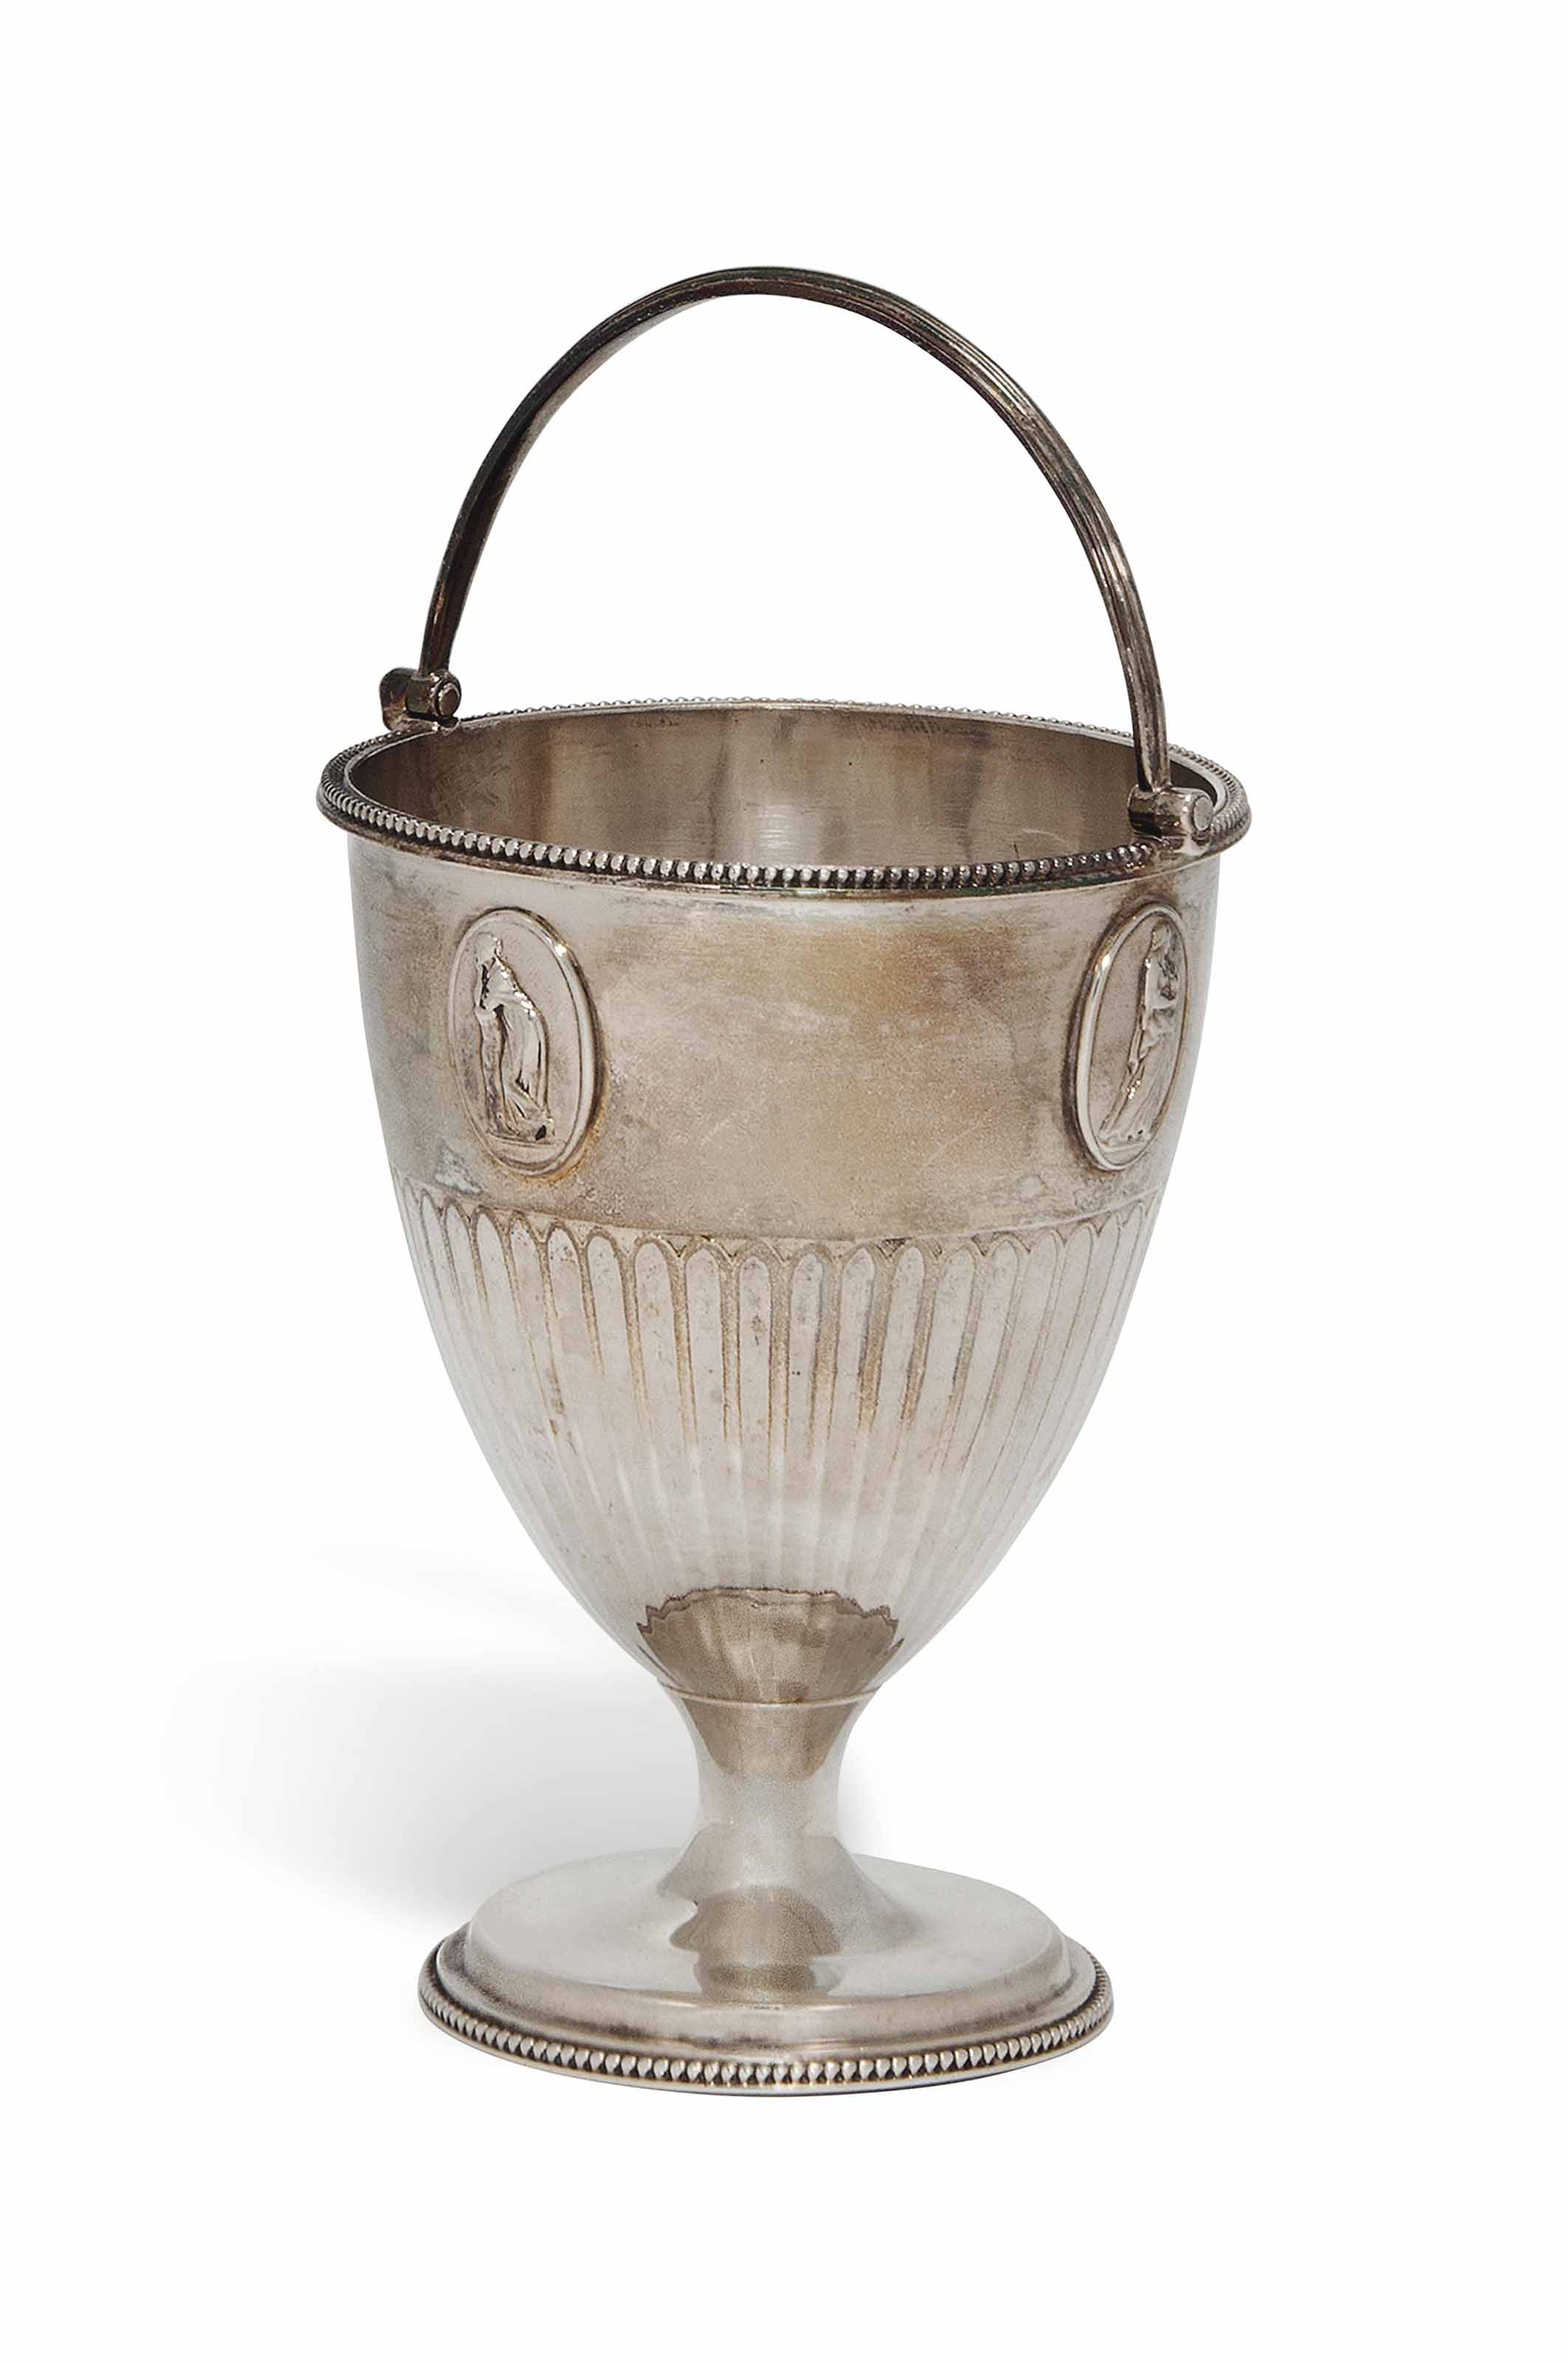 A GEORGE III SILVER SWING-HANDLED SUGAR BASKET